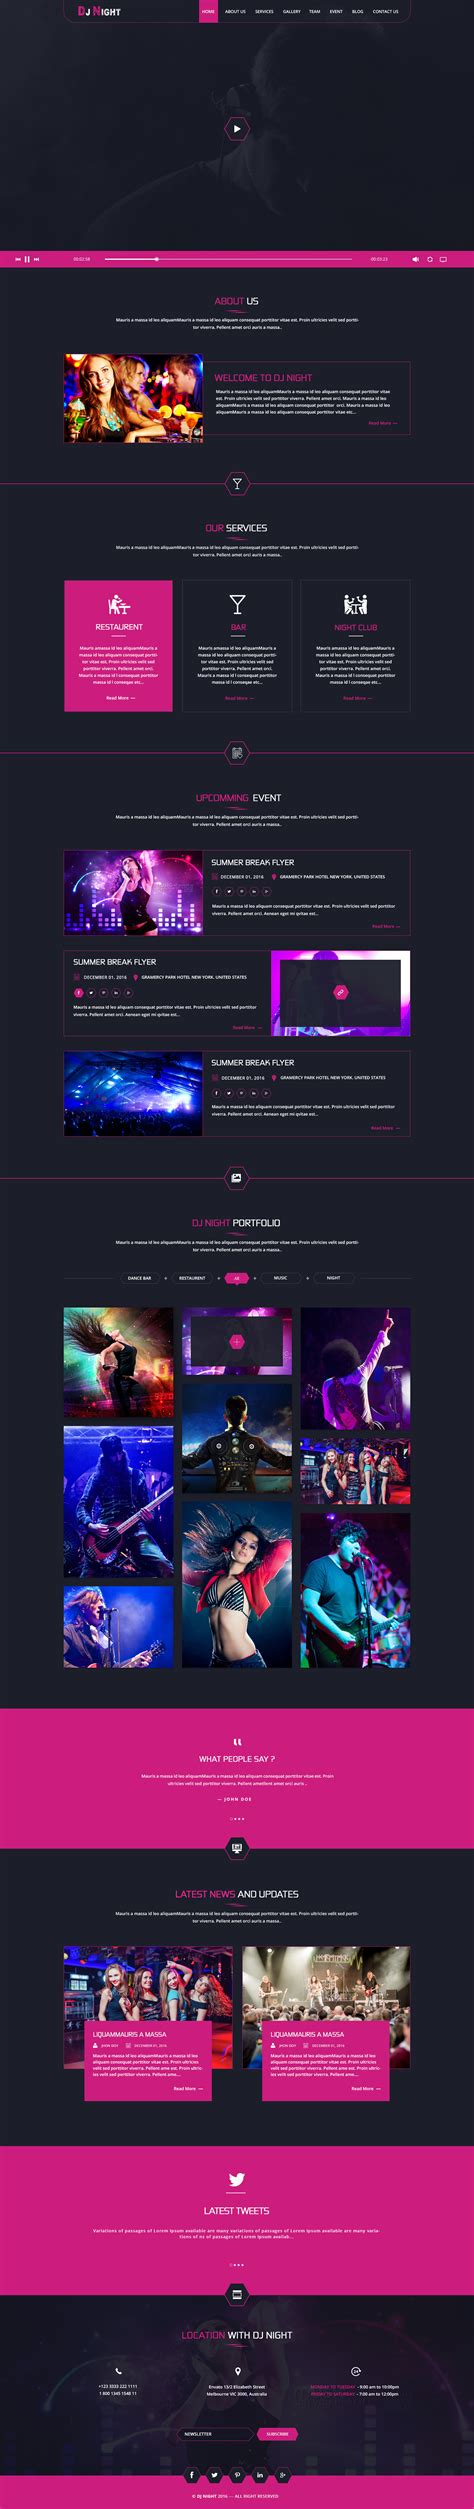 dj themes songs dj night event dj party music club psd template by